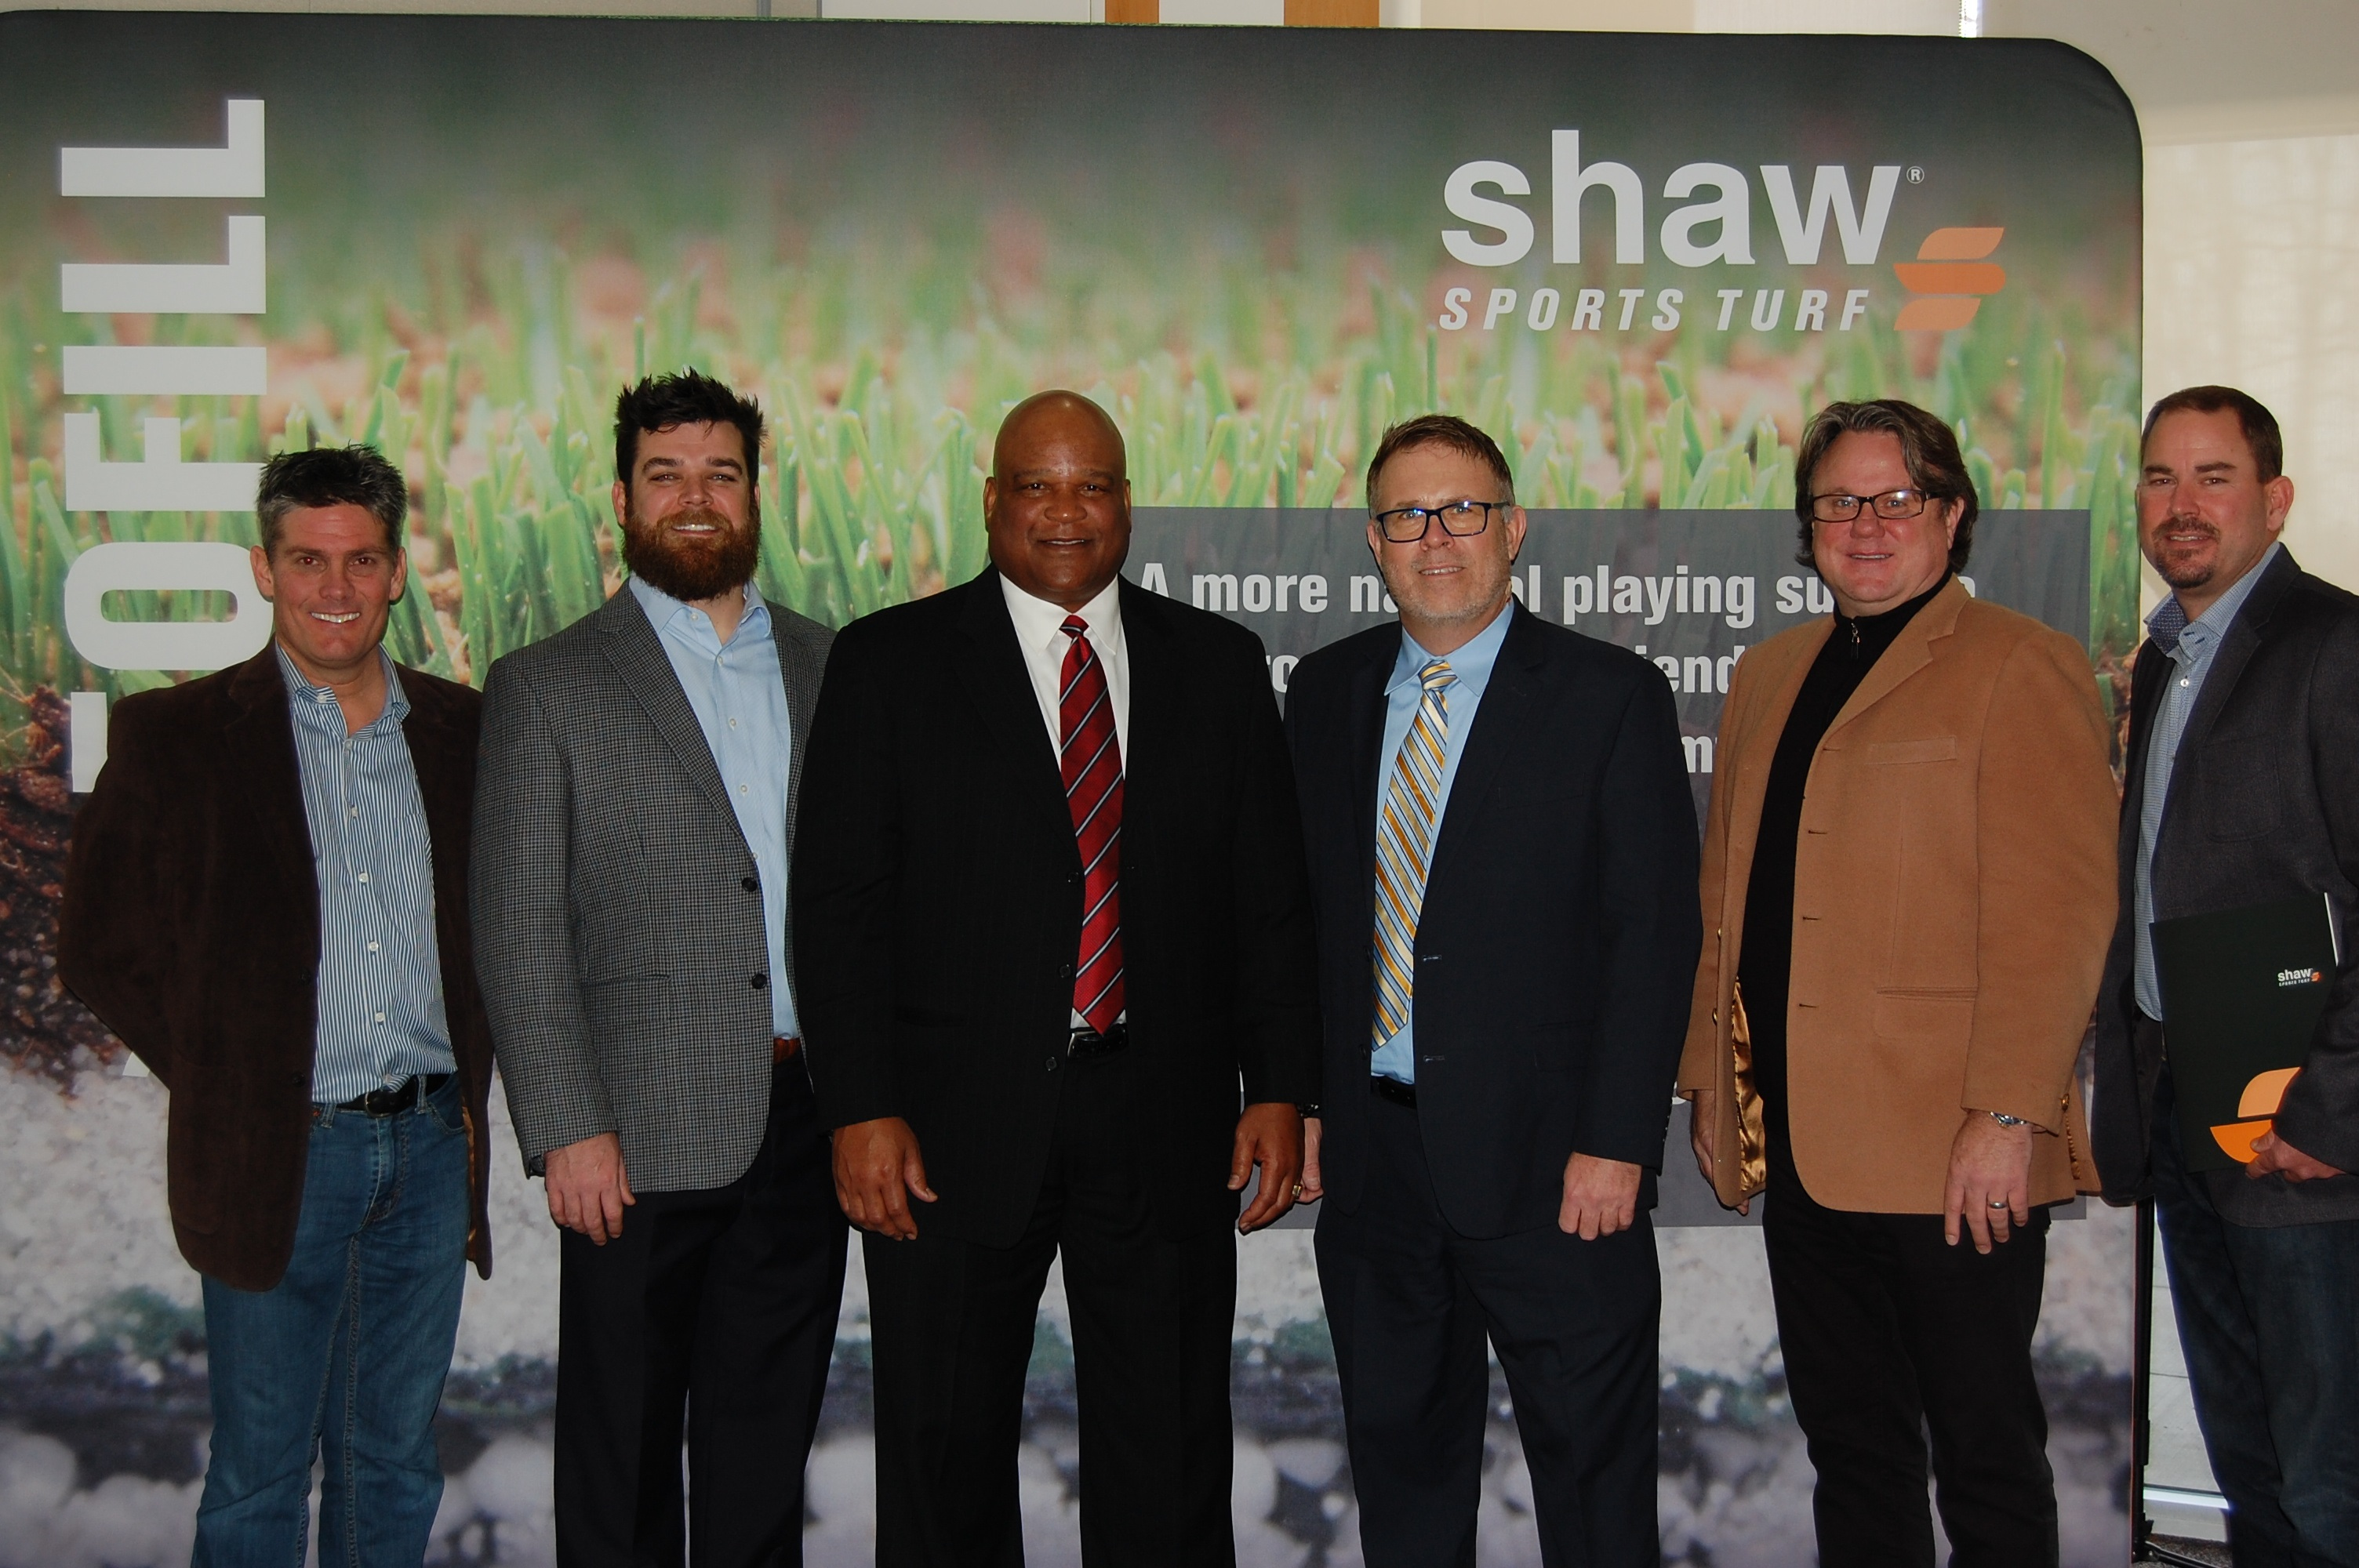 GATEWAY SPORTS VILLAGE ANNOUNCES SELECTION OF AND PARTNERSHIP WITH SHAW SPORTS TURF Image